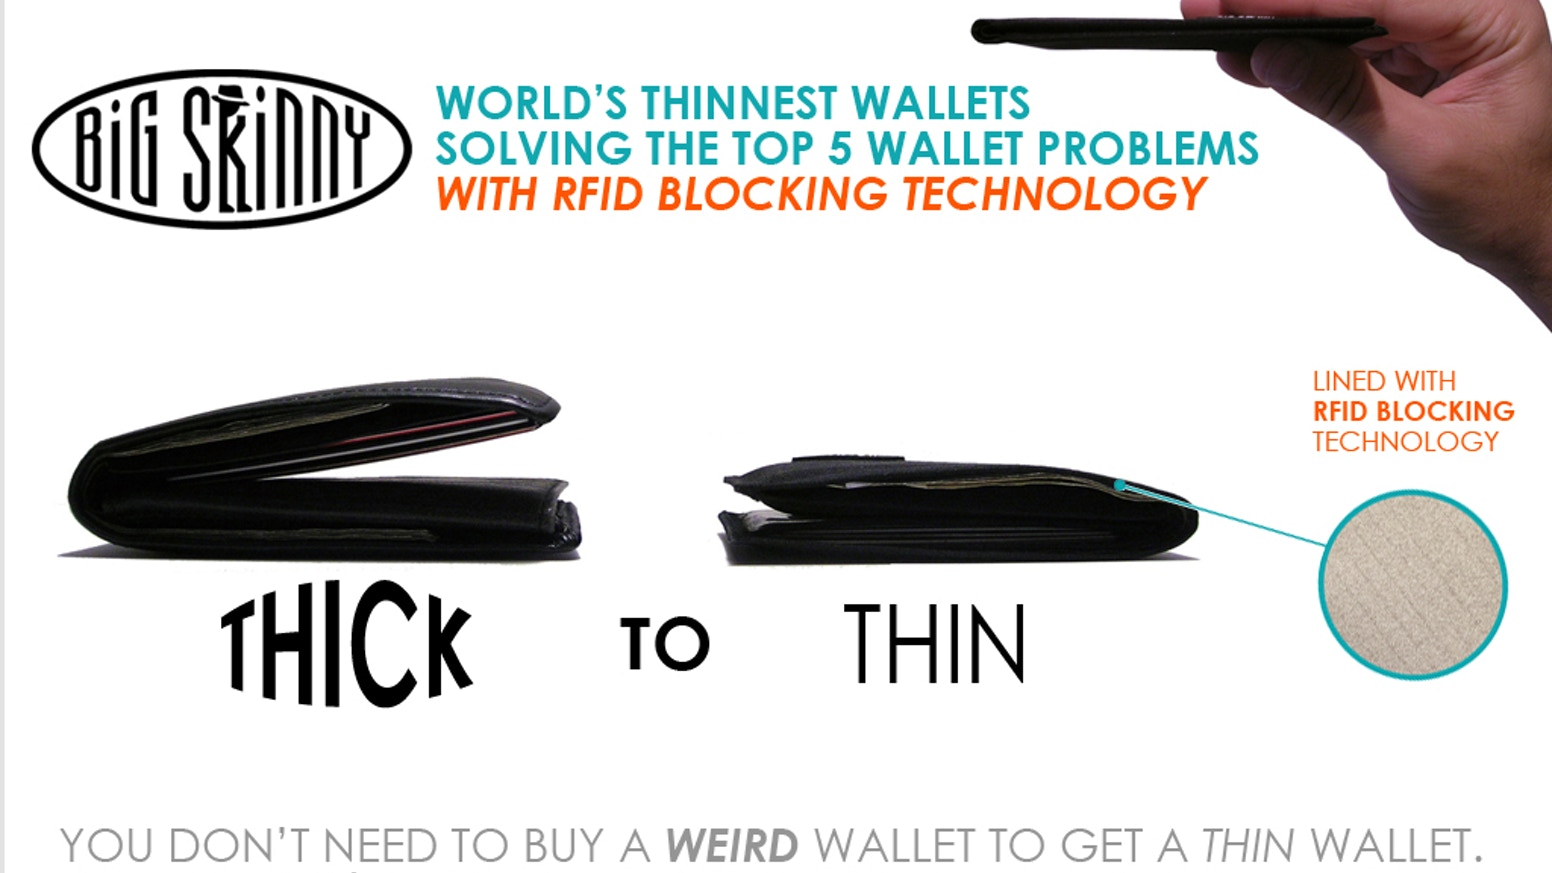 Reduce your wallet size by 50+% with RFID blocking. Solve 5 wallet problems, add functionality w/out losing pockets or features.